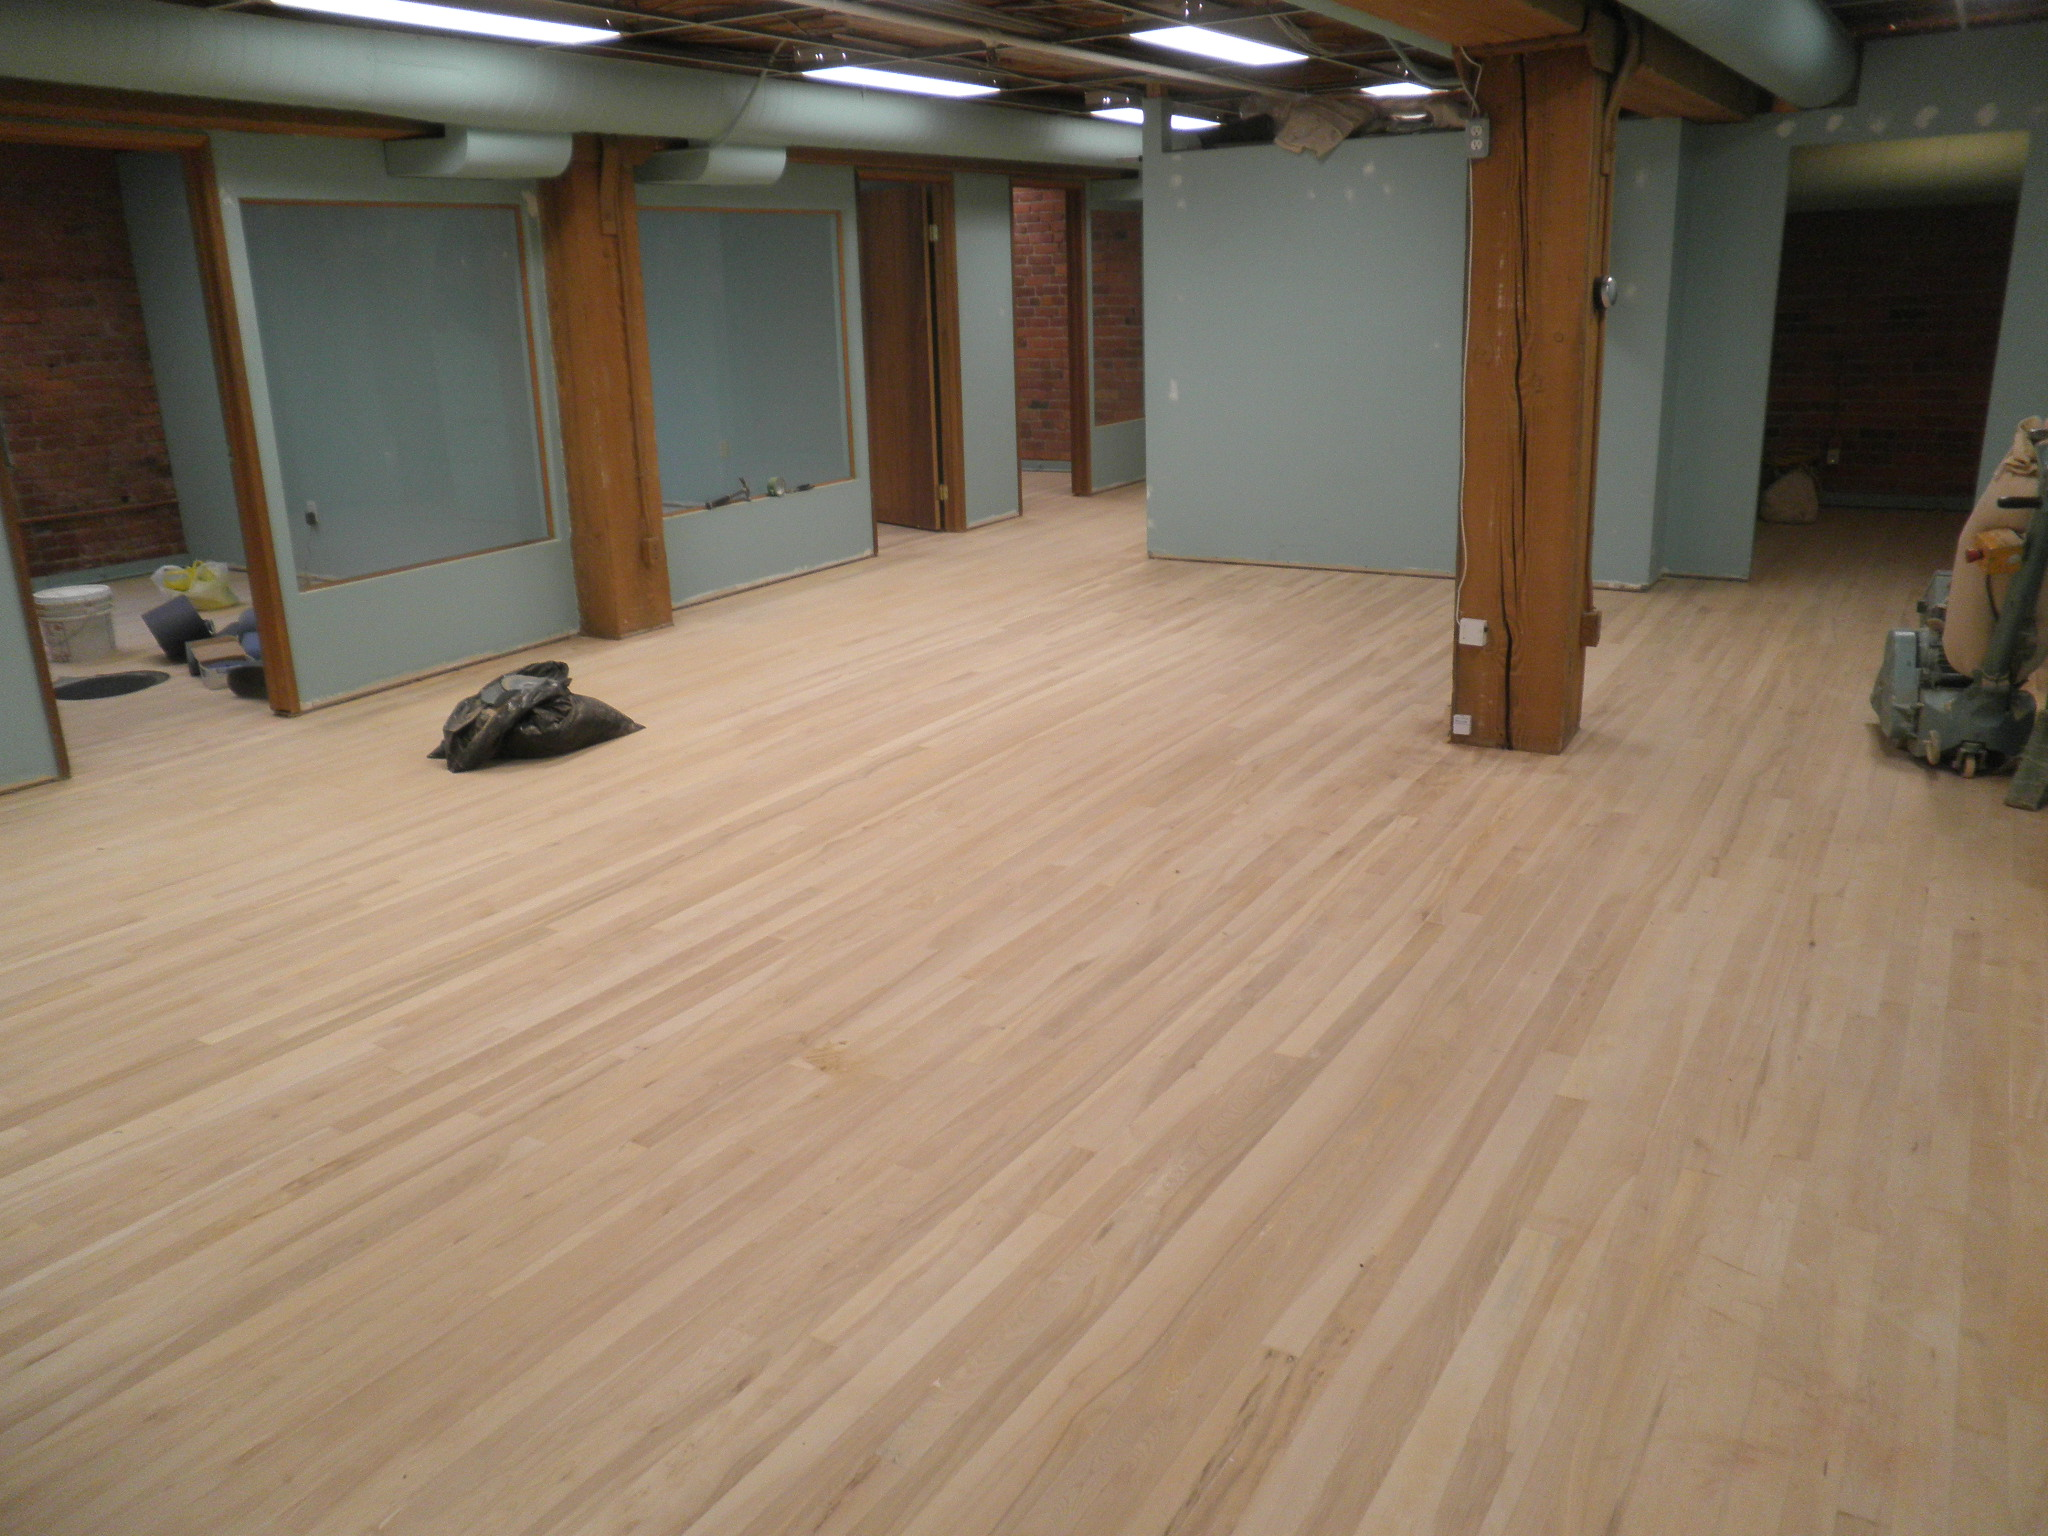 Cost to refinish hardwood floors flooring ideas home for Sanding hardwood floors